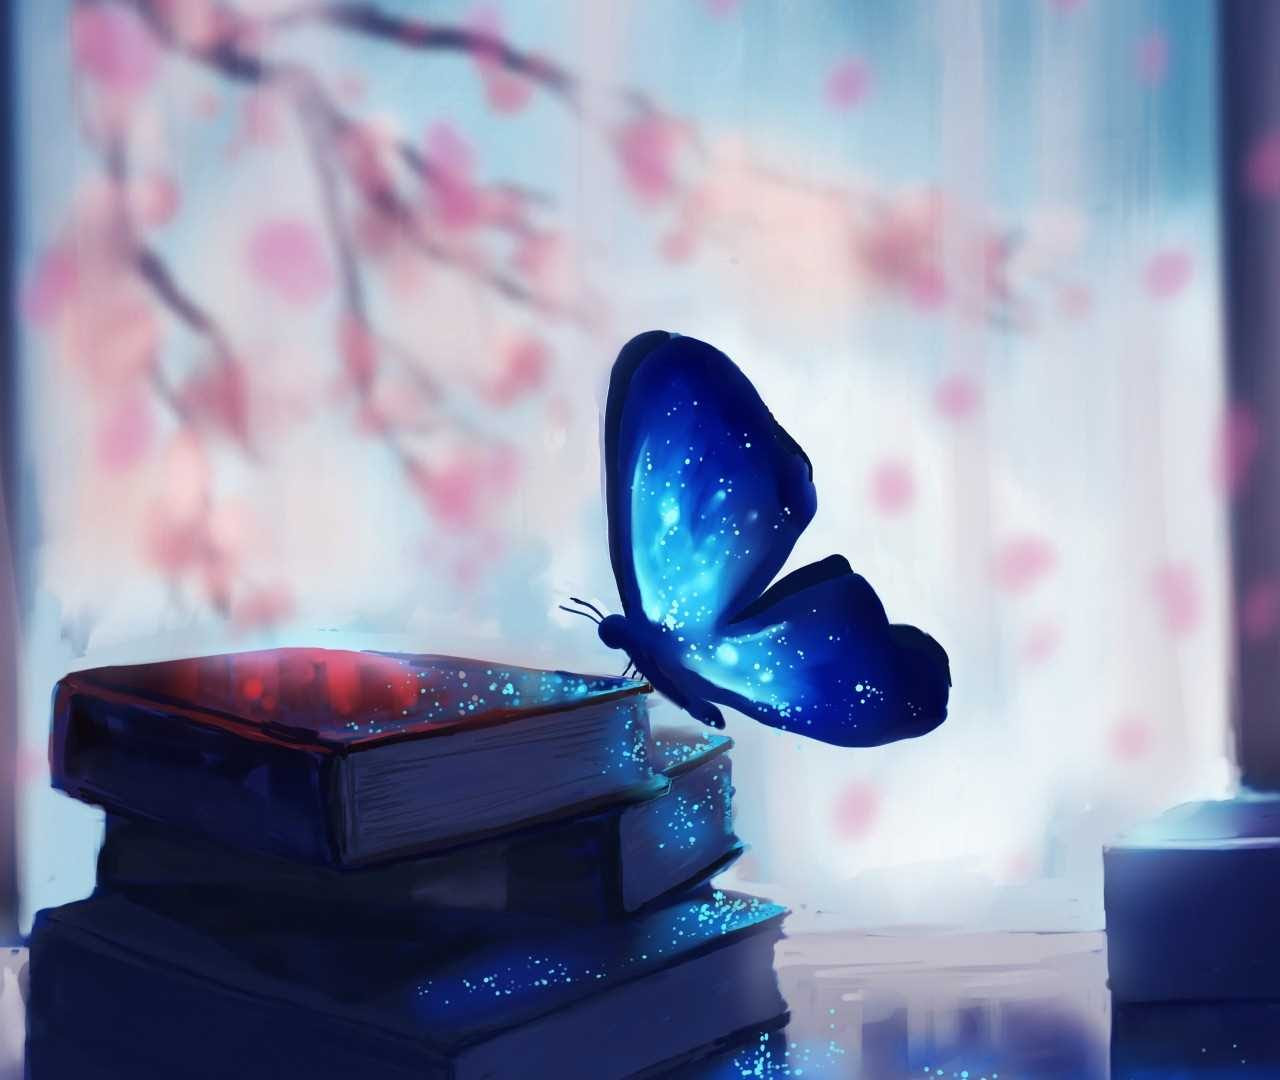 Blue Morpho Butterfly Background Wallpapers 20742 - Baltana